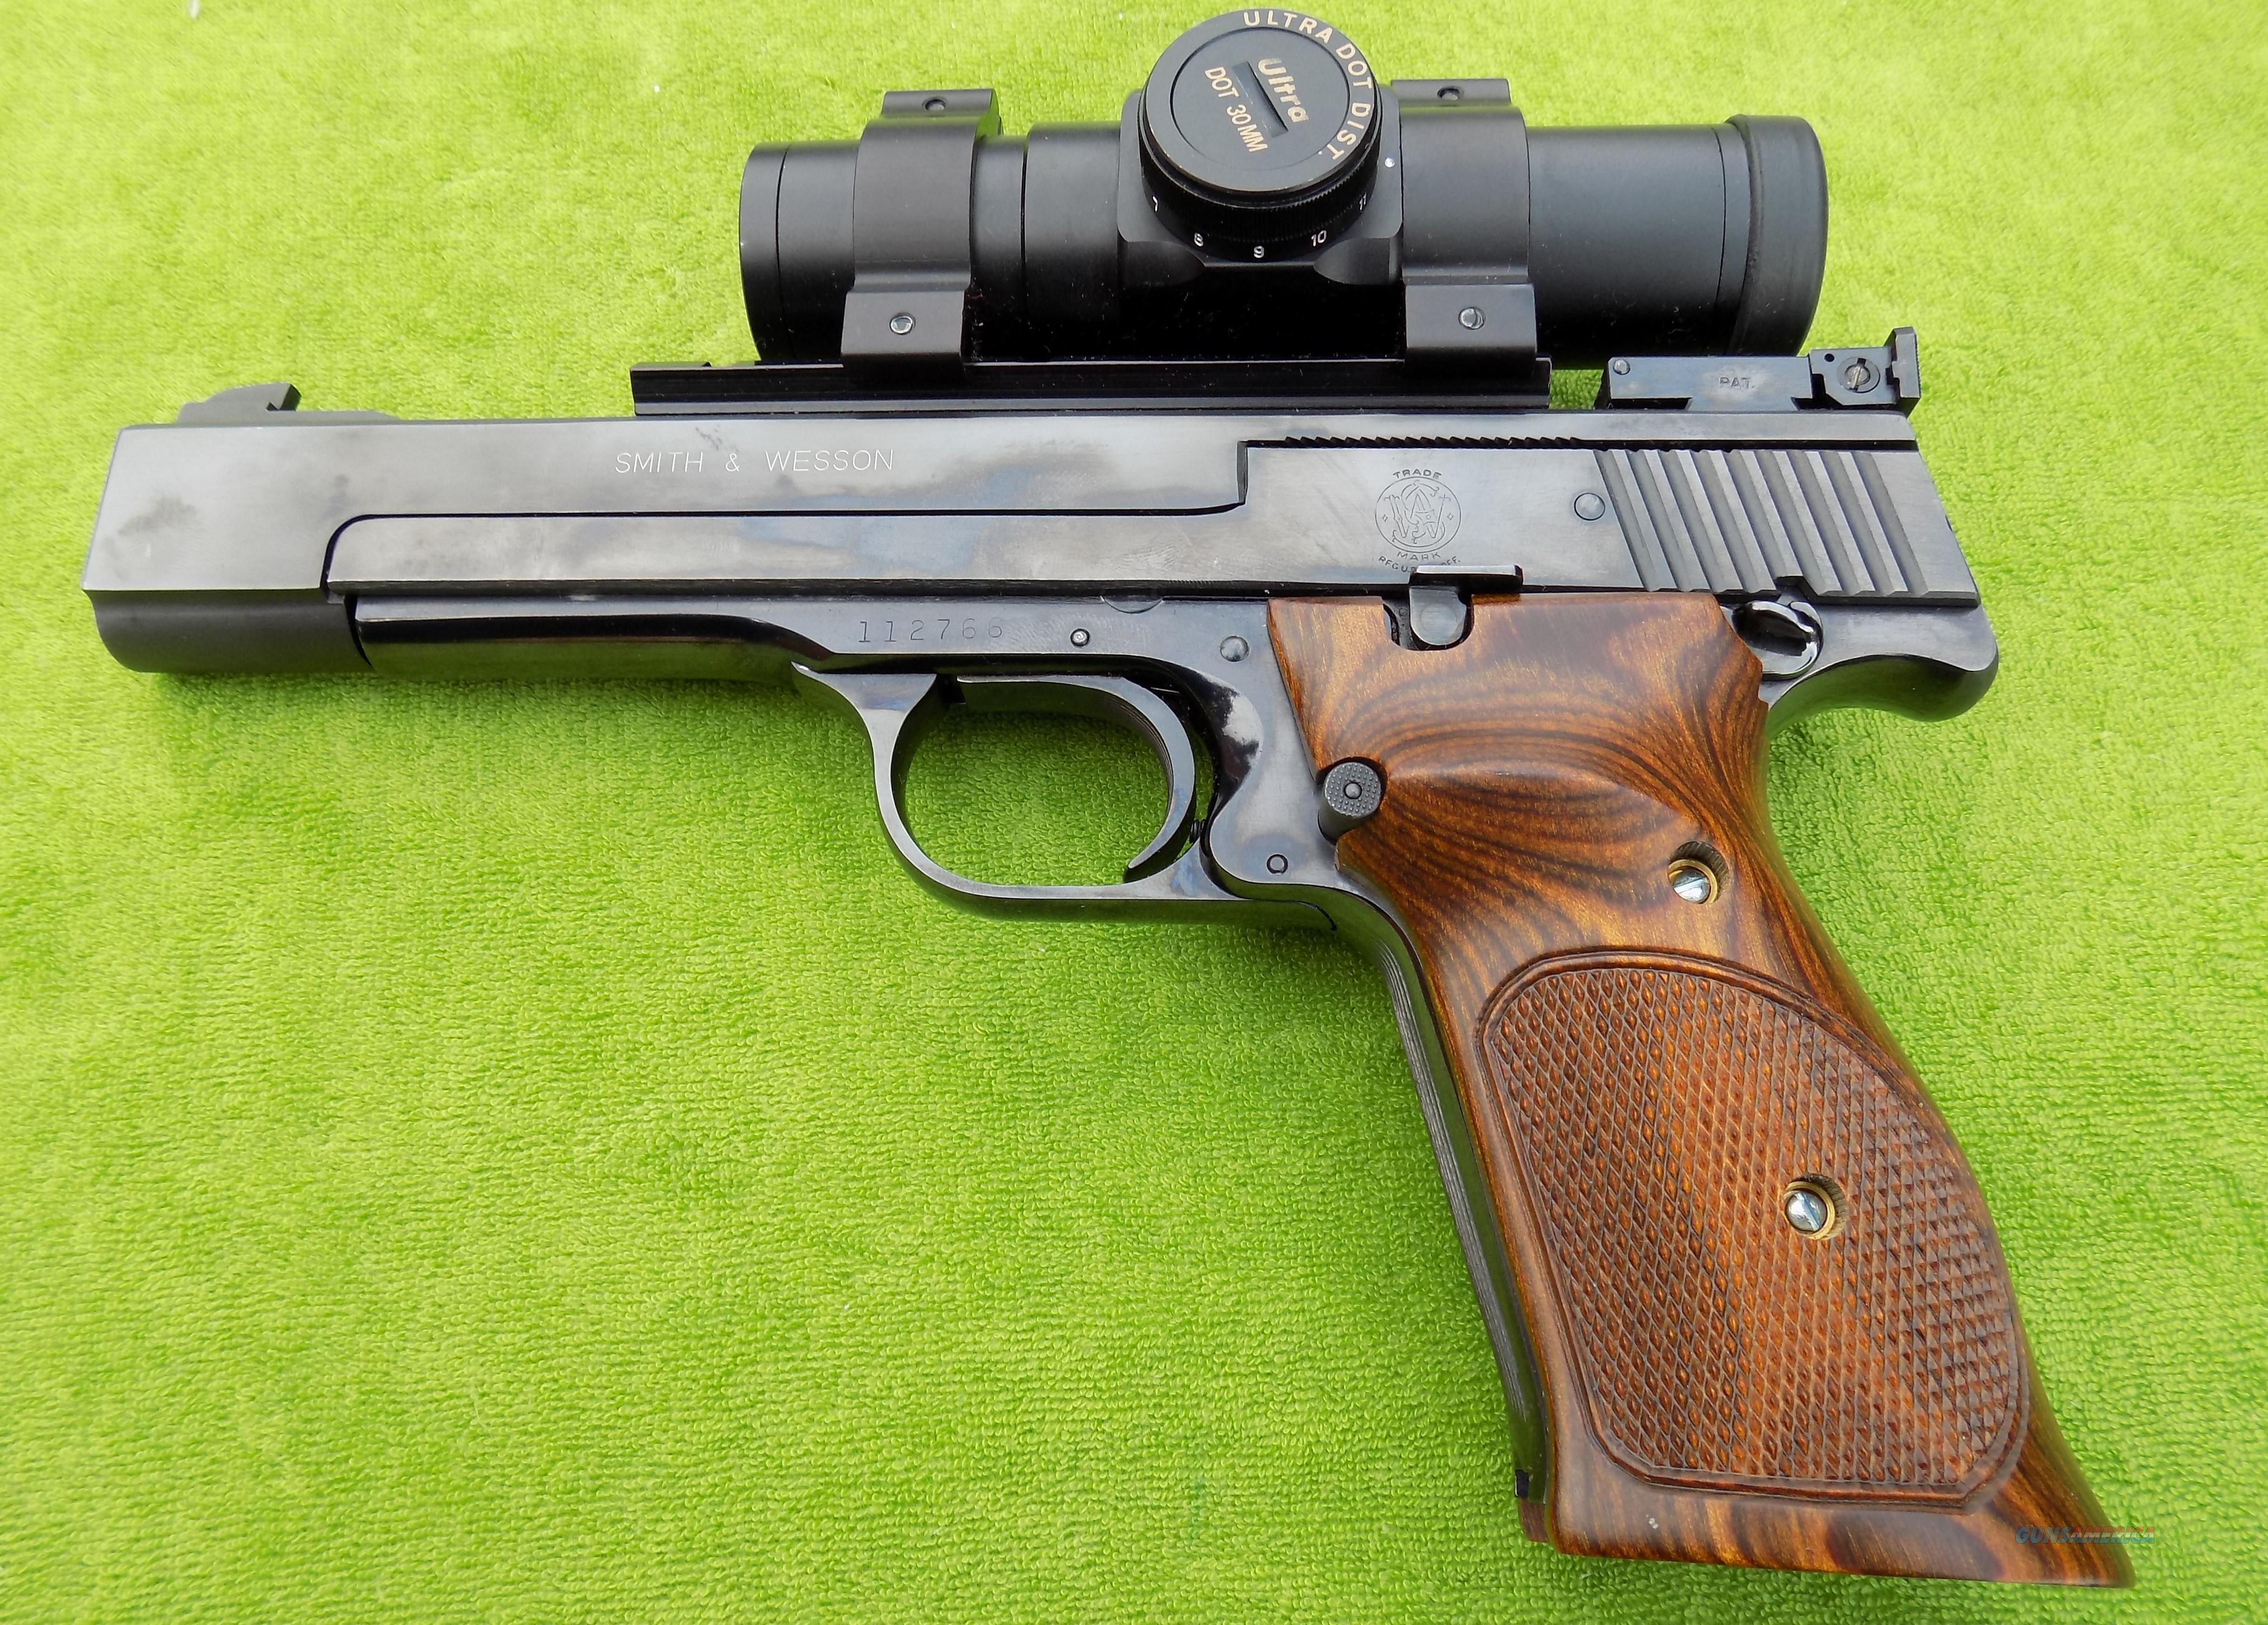 Smith & Wesson Model 41 with Red Dot Optic for sale